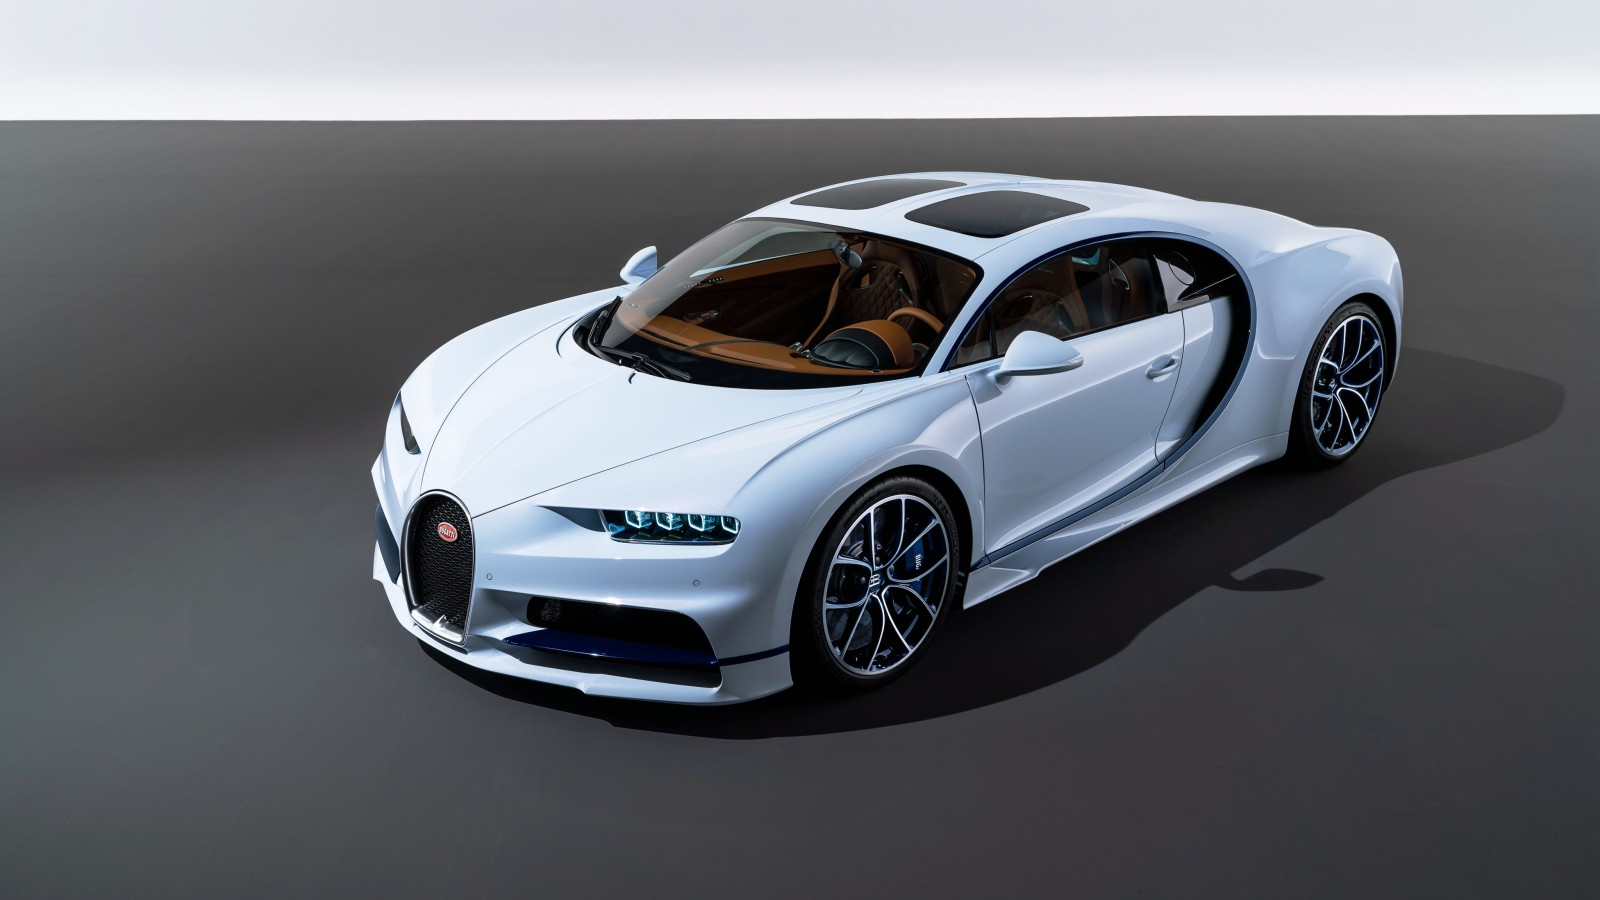 bugatti aerolithe with Bugatti Chiron Sky View Show Car 4k Wallpapers on Bugatti 57 Arolithe together with Bugatti Chiron 2016 Bude Jeho Stylistickym Vzorem Vision Gran Turismo as well Amazing Bugatti Aerolithe Concept 2025 moreover Concept Car Design Drawings further 1936 E2 86 921938 Bugatti Type 57s Atalante.